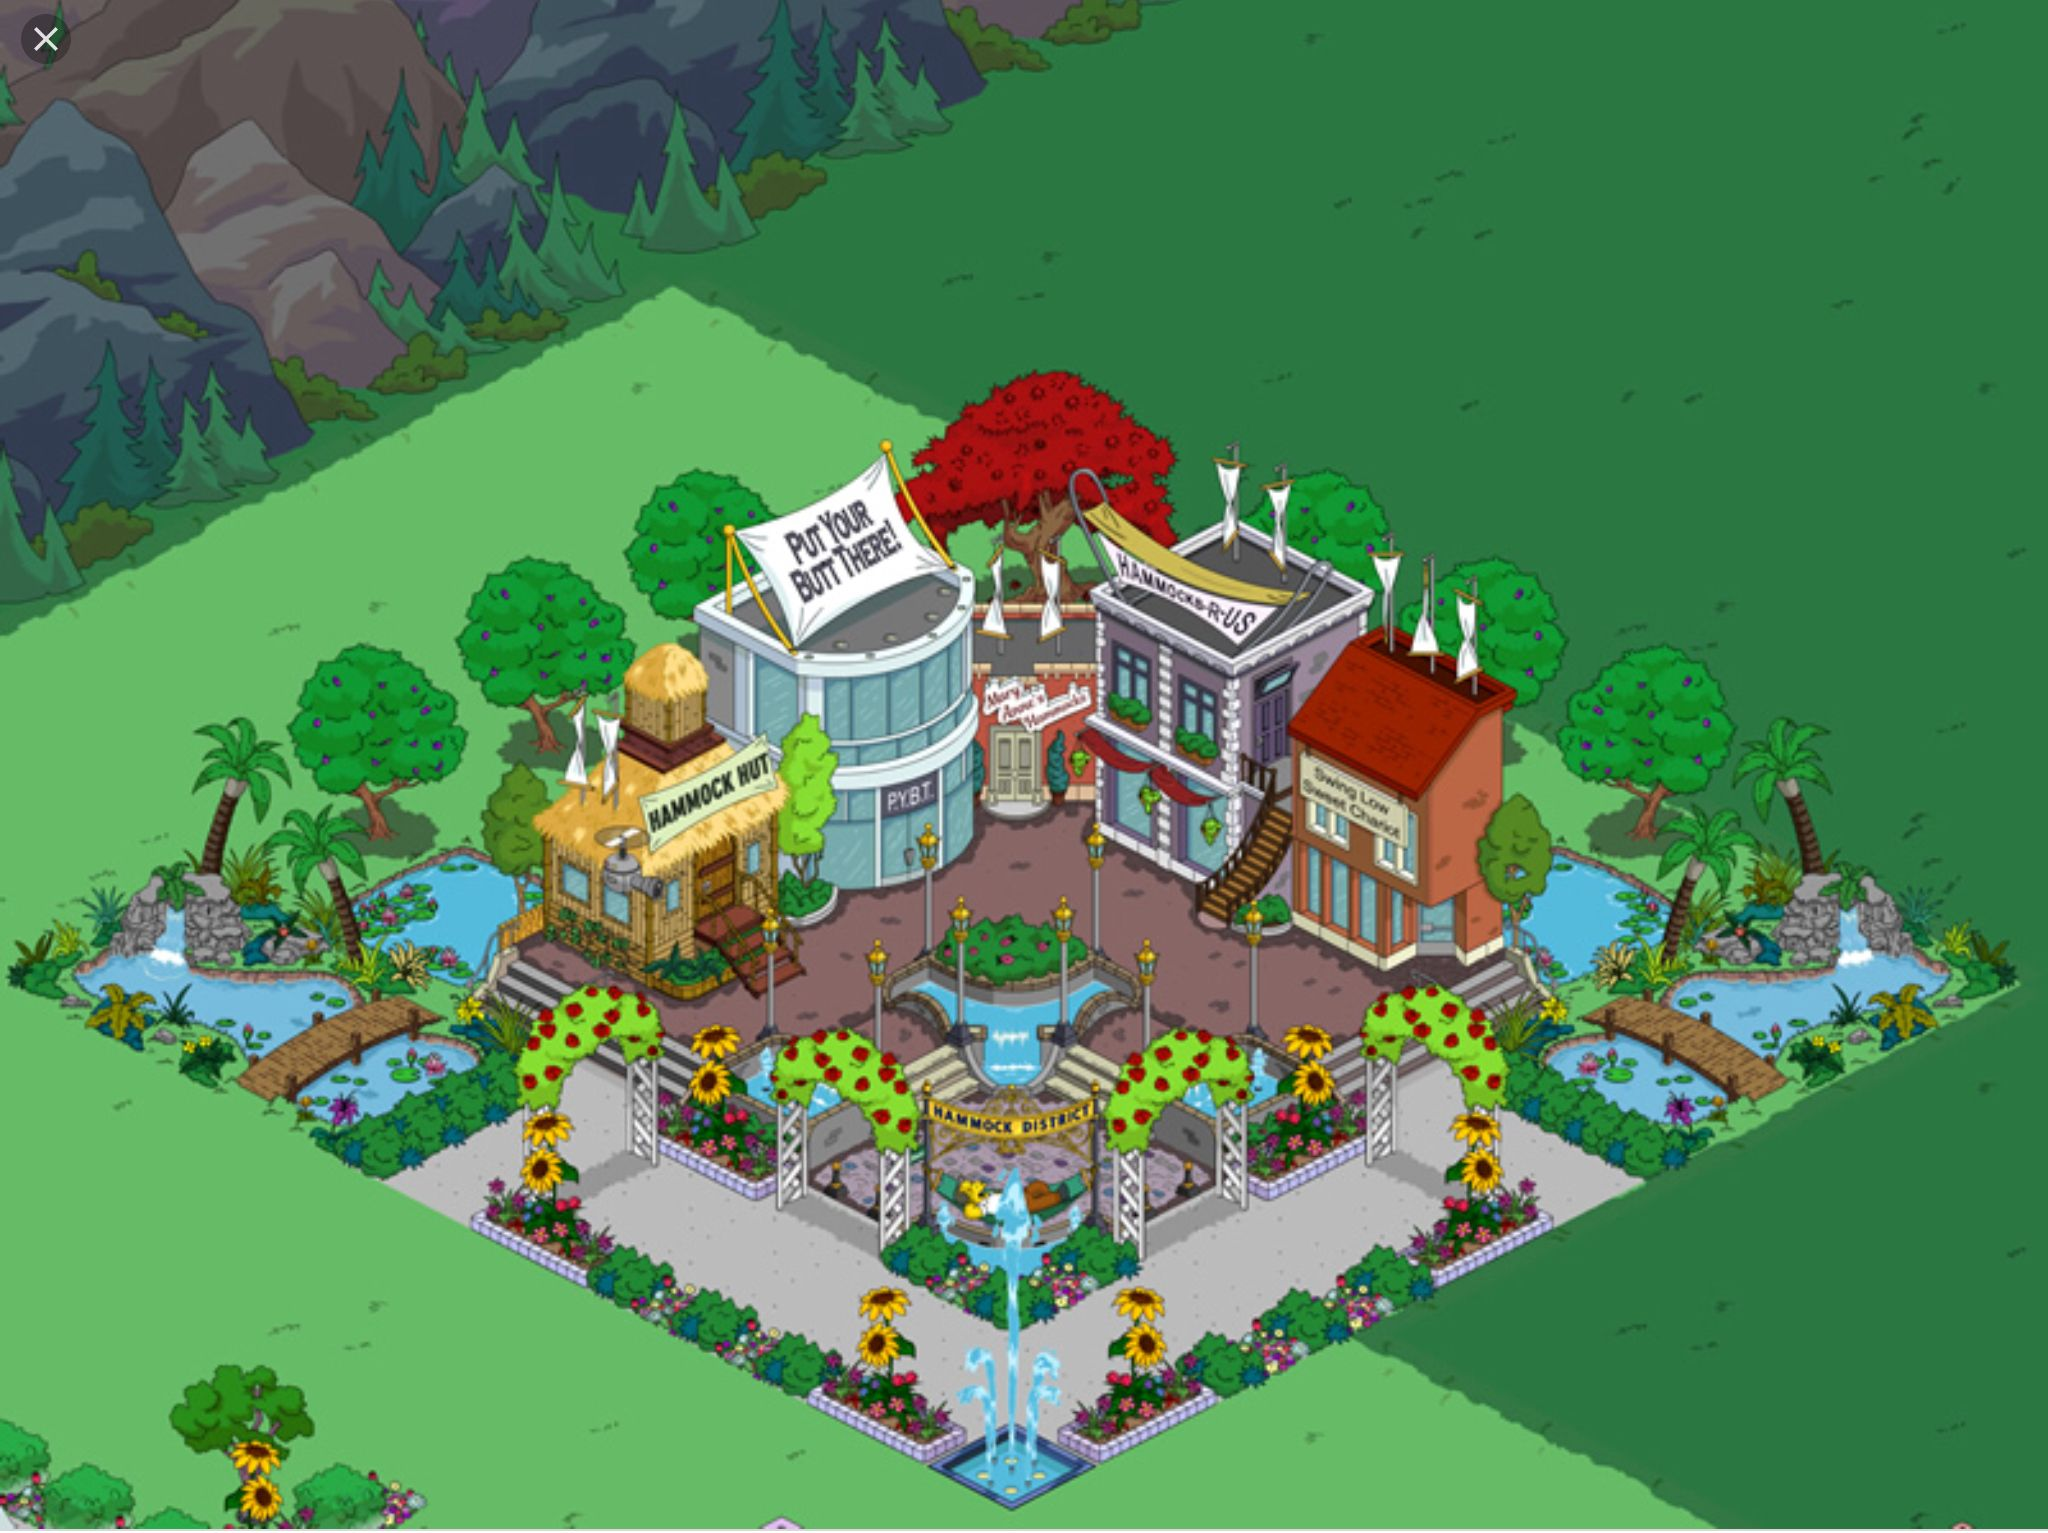 Simpson's Tapped Out town designs by Mollie Seney The